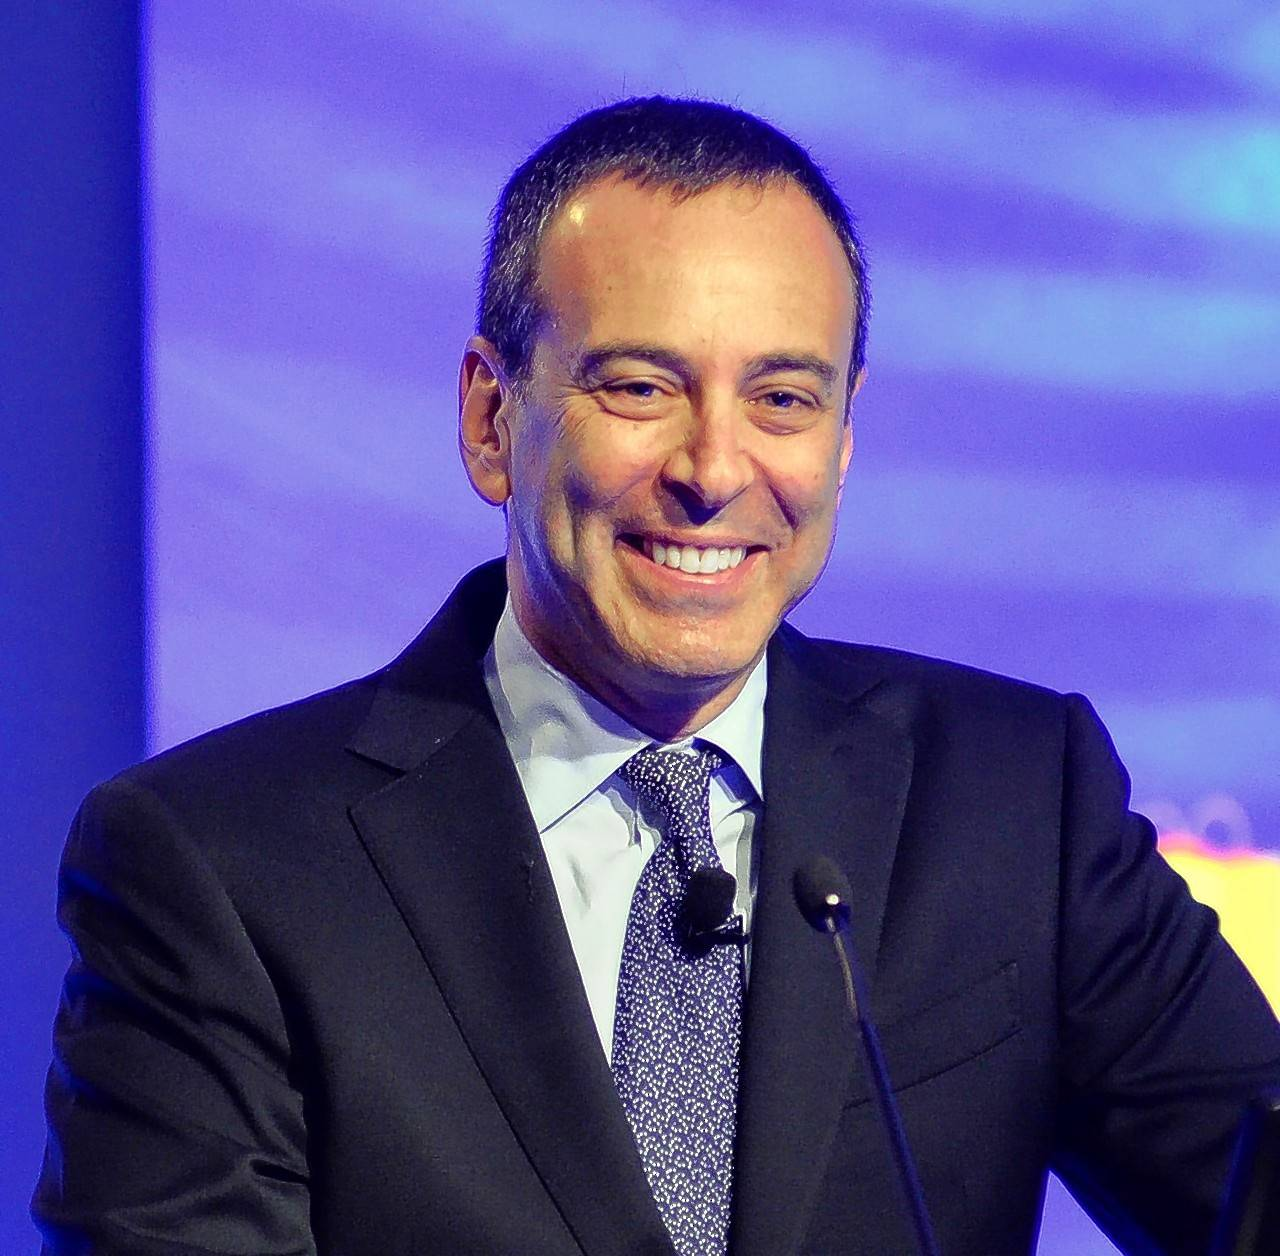 Eddie Lampert's plan to save Sears would hand his hedge fund $1 billion